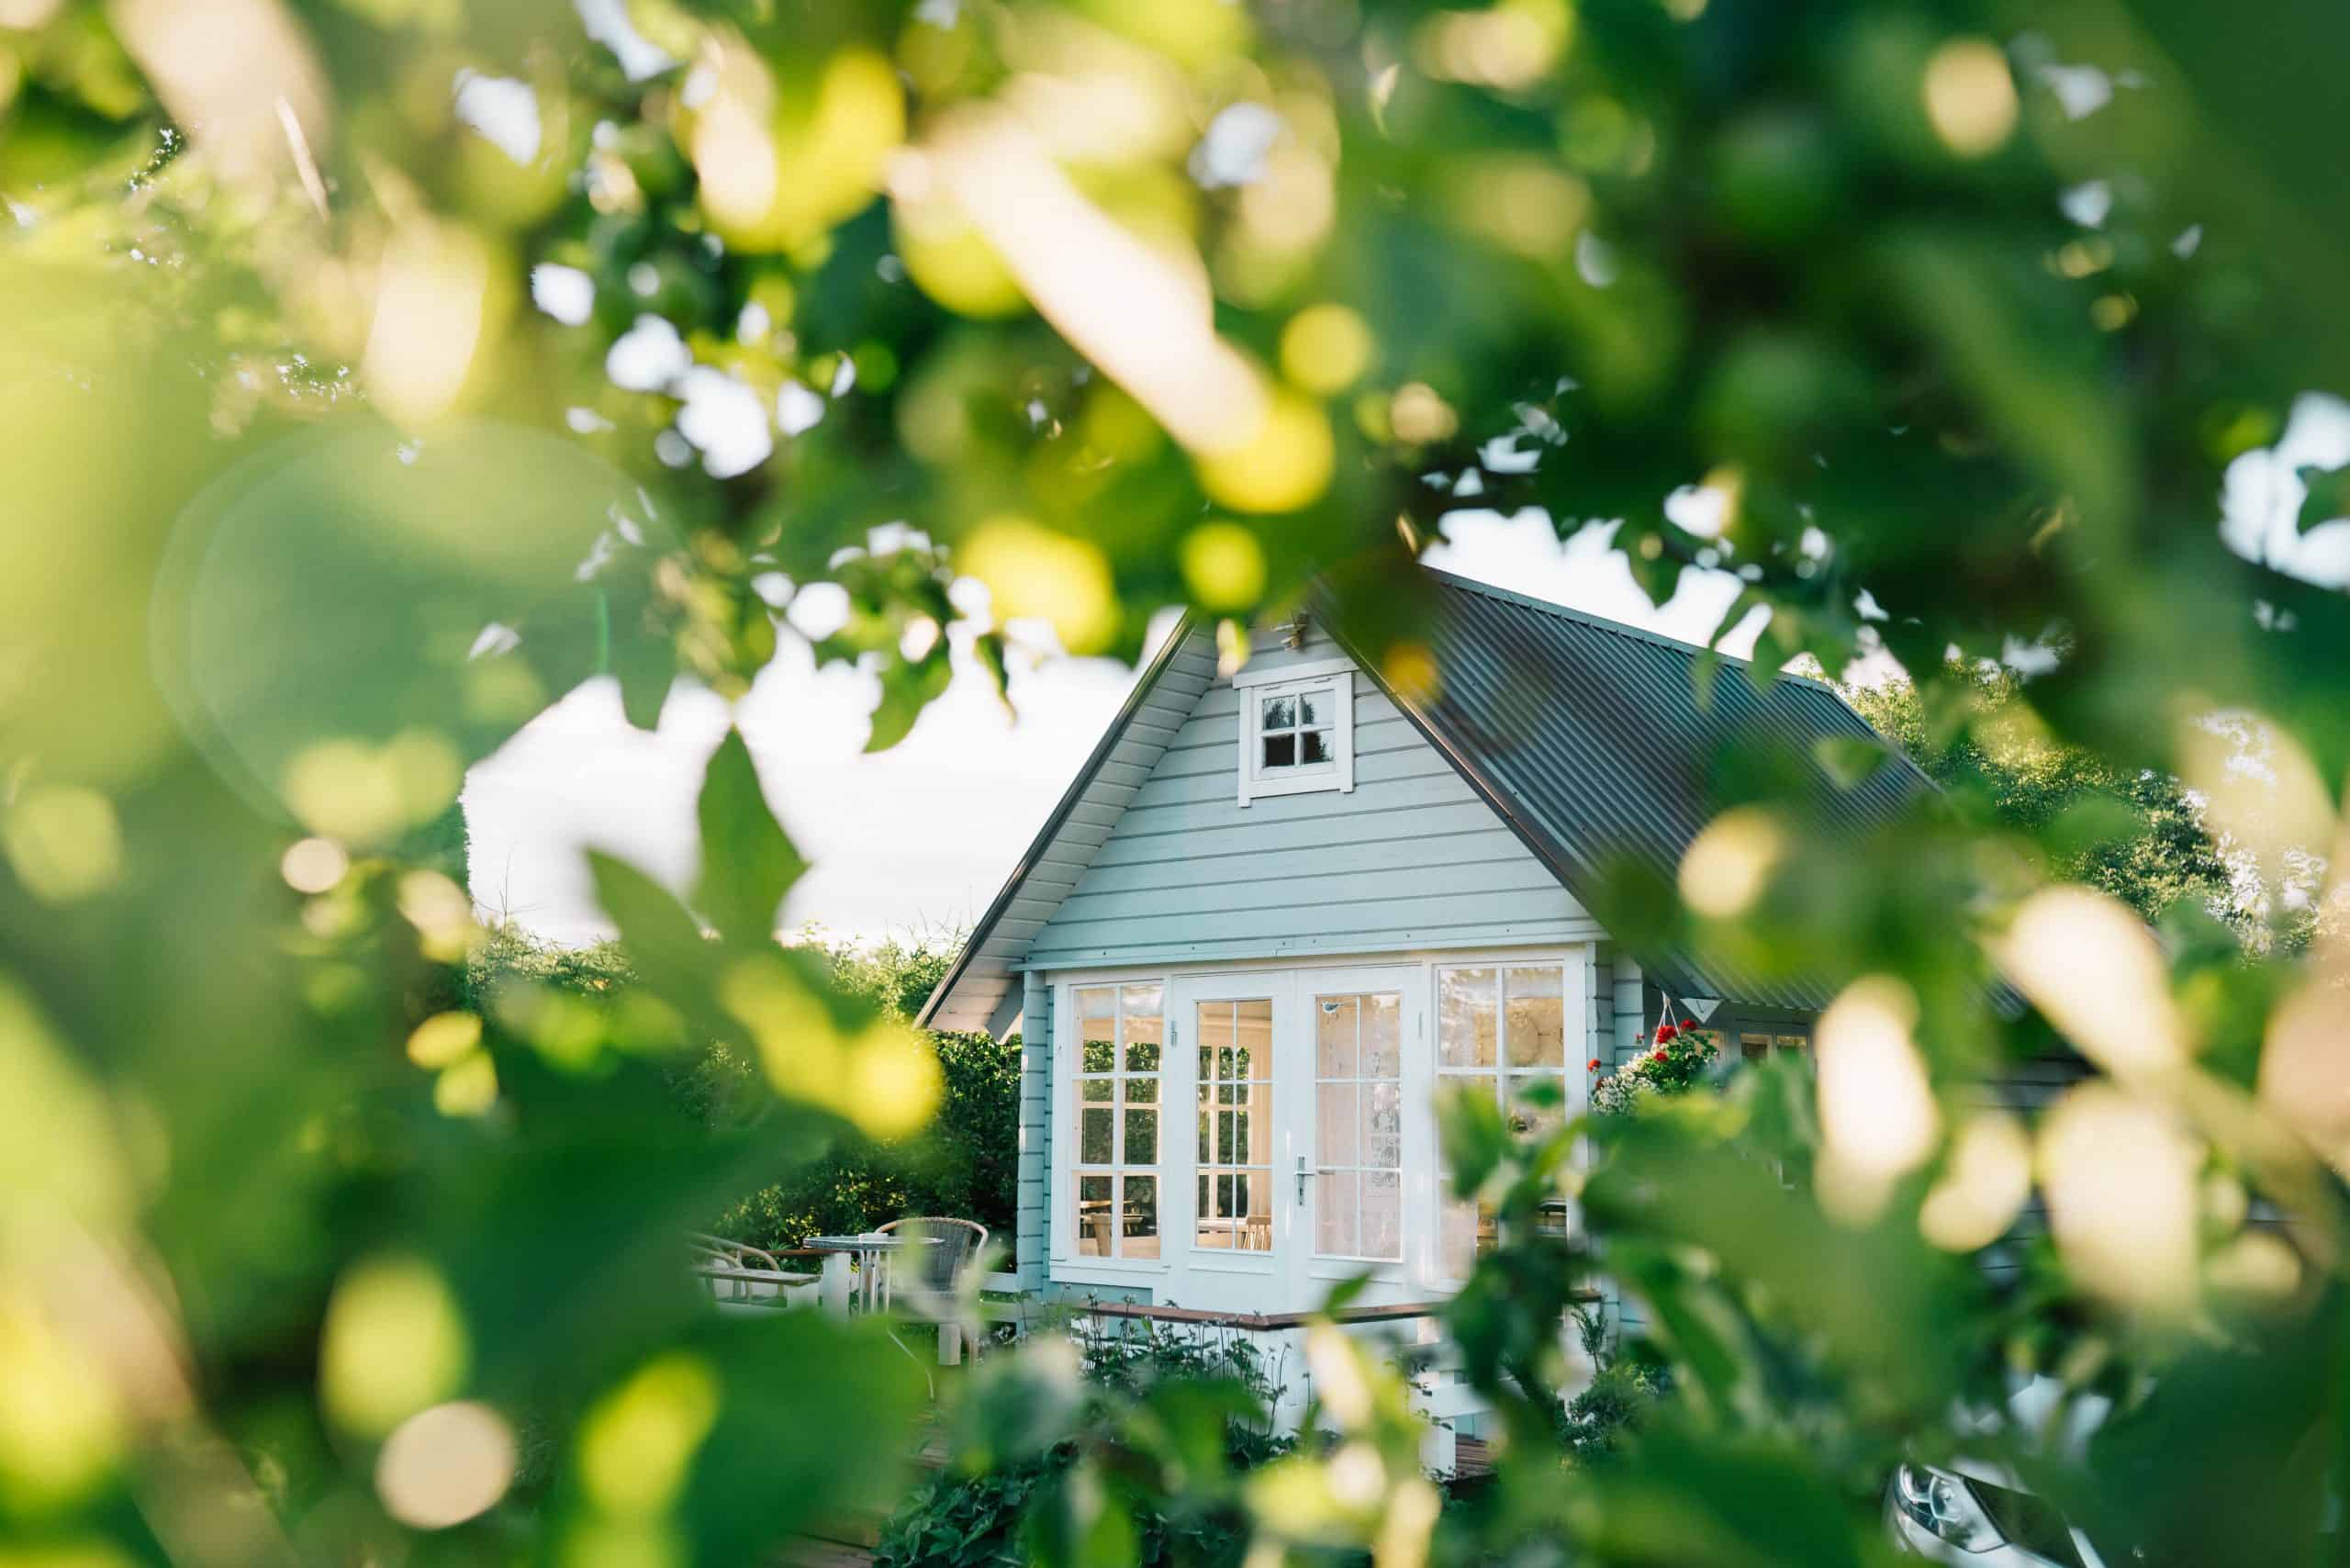 Building a granny annexe: everything you need to consider